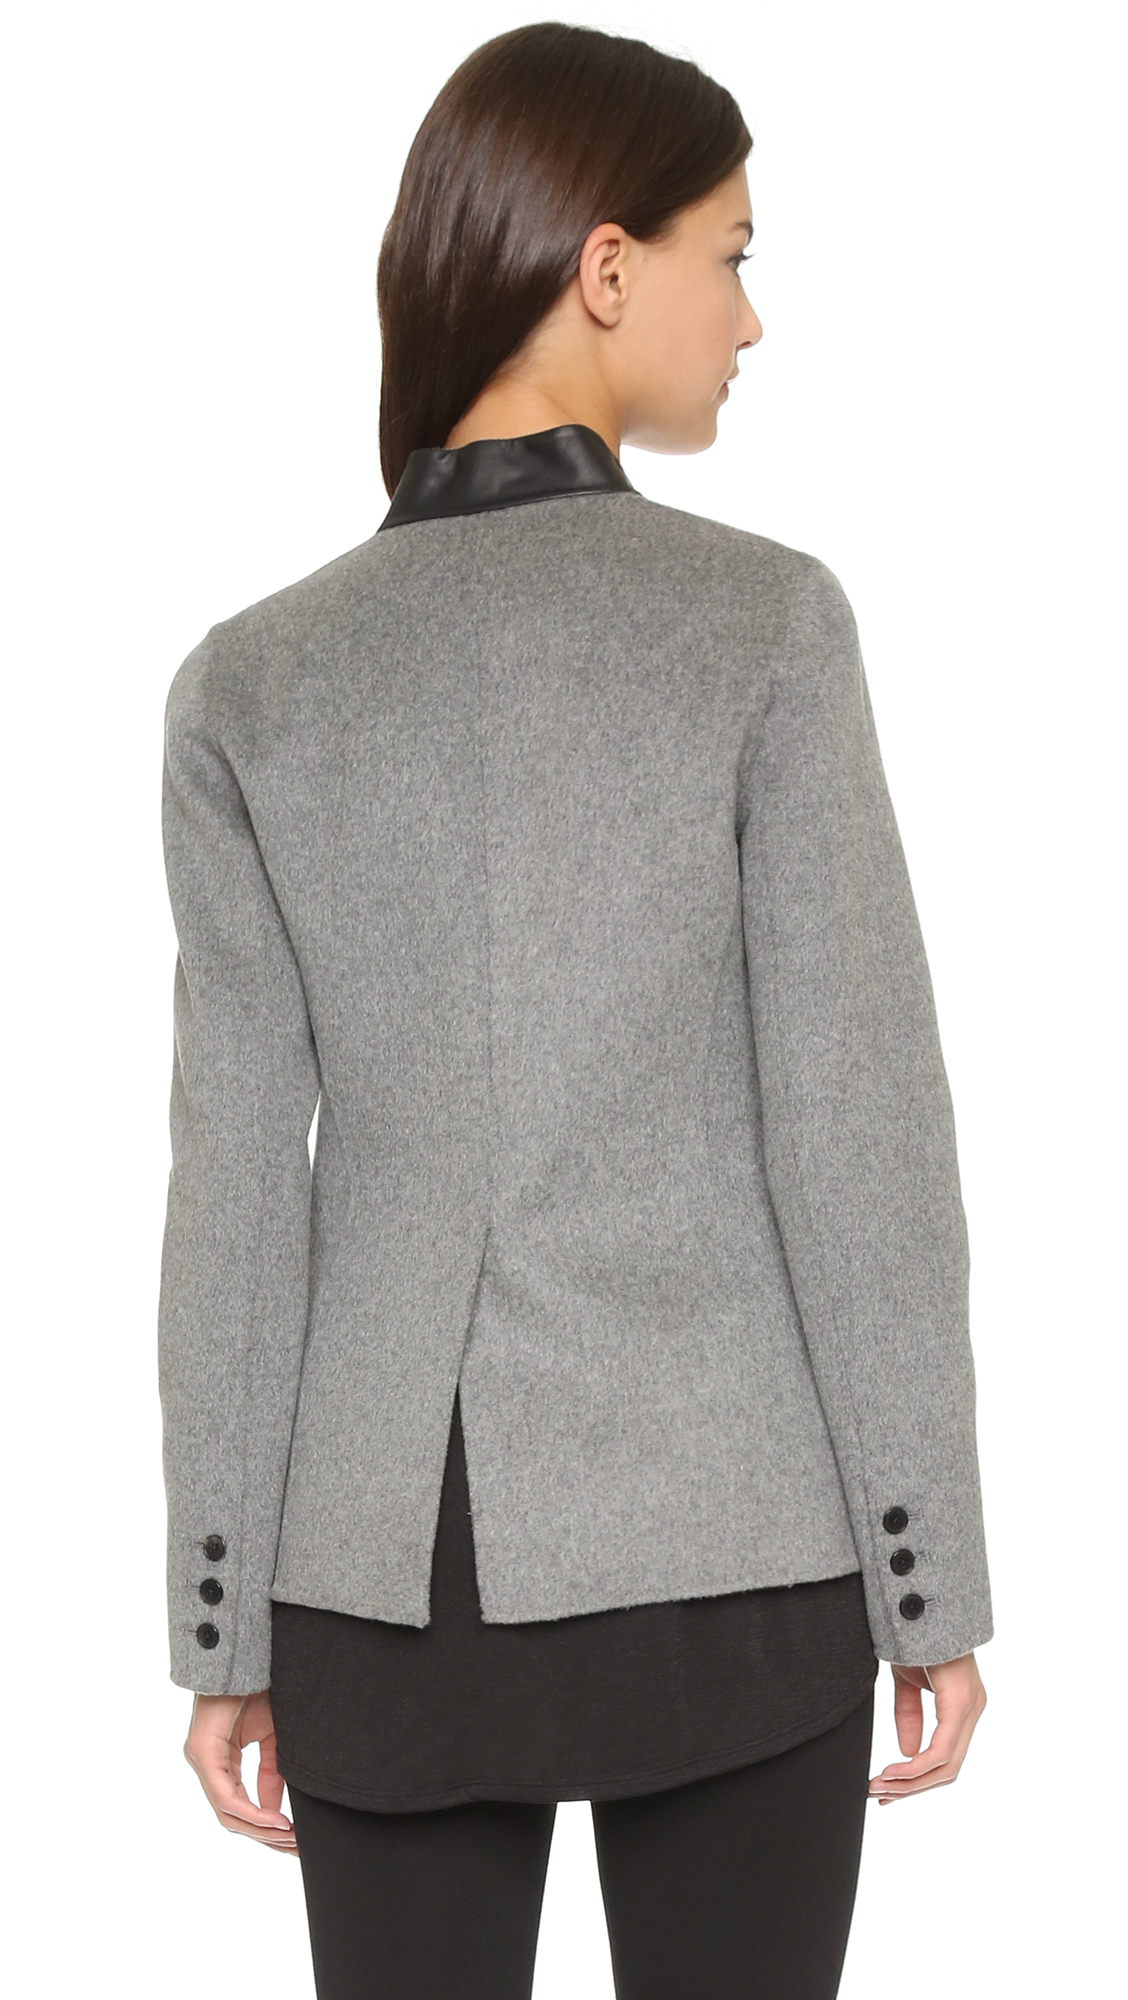 Vince Leather Trim Blazer - Charcoal Melange black in Gray - Lyst 2aef41130b